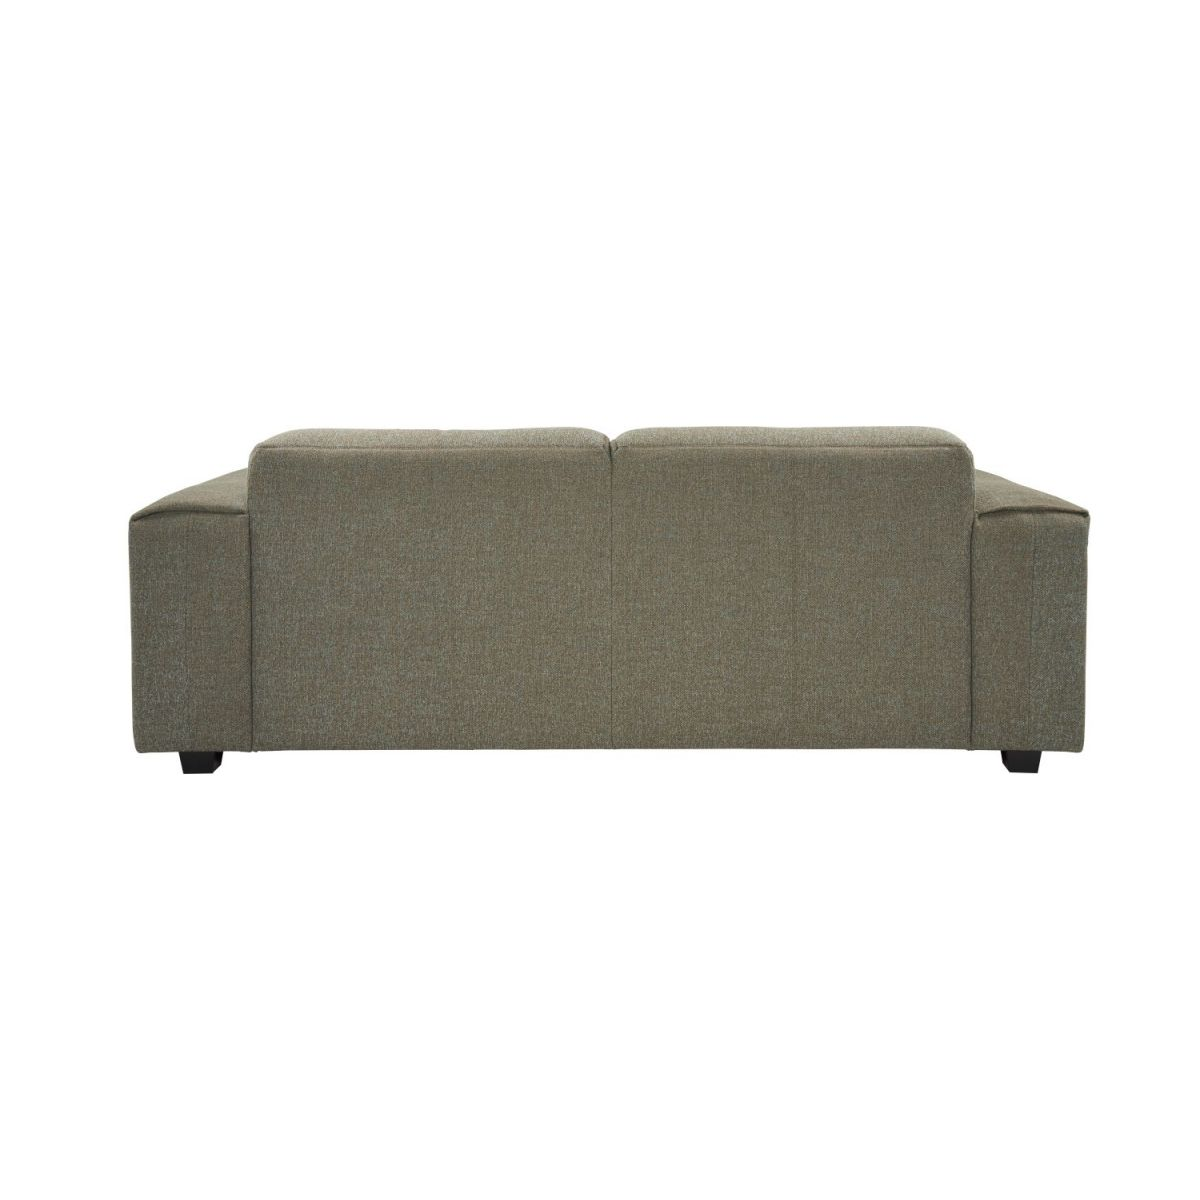 2 seater sofa in Lecce fabric, slade grey n°3